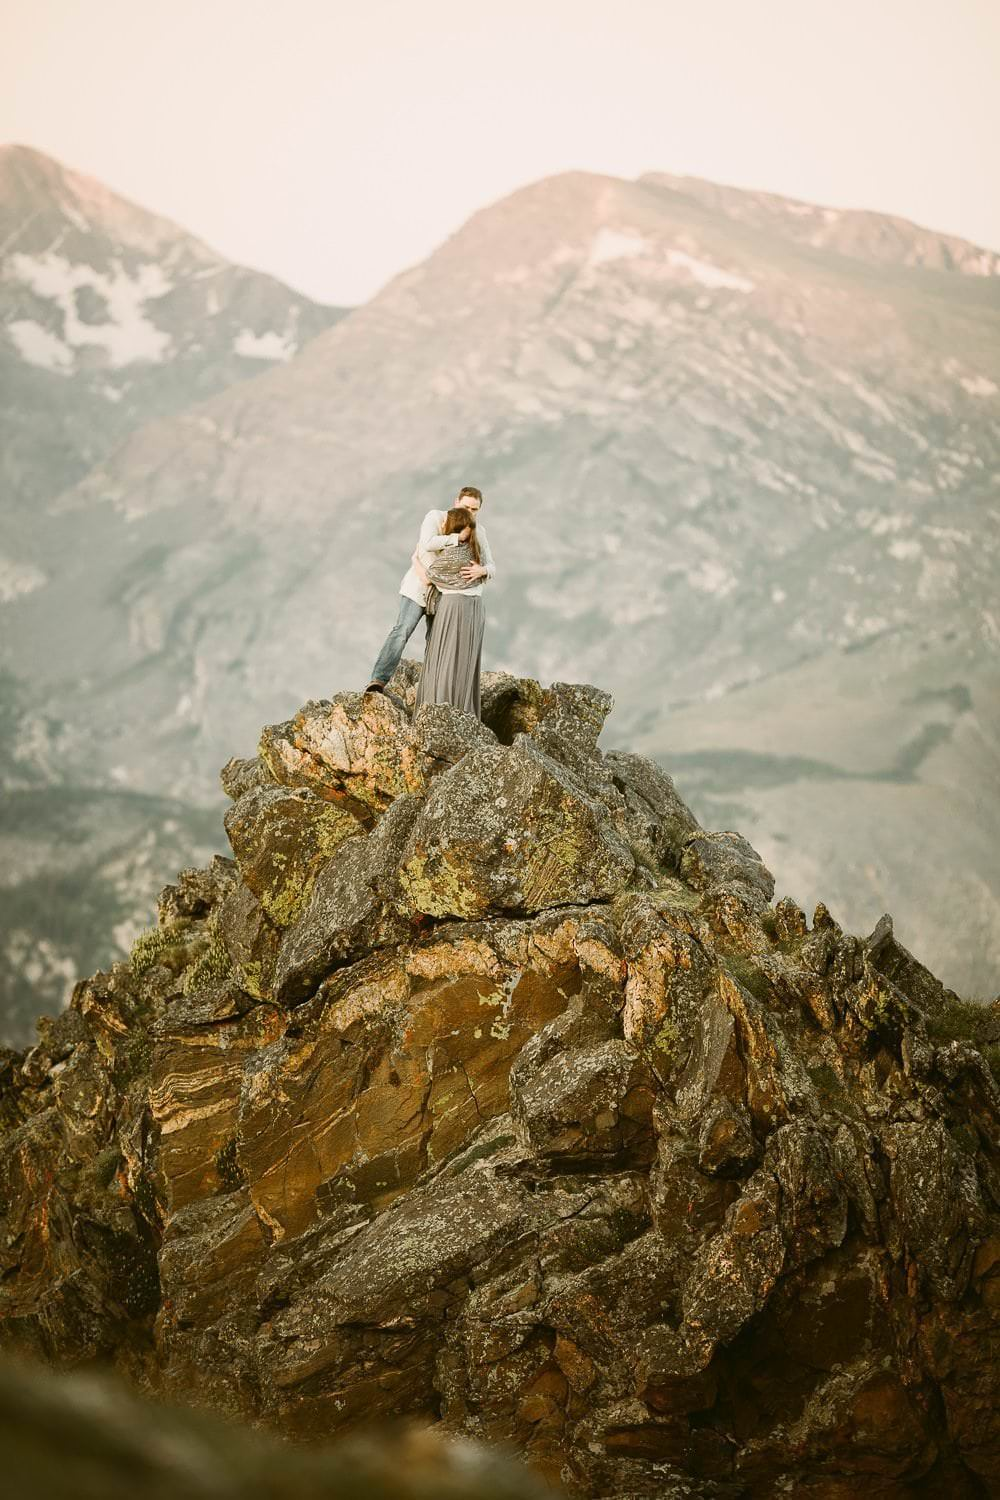 COLORADO ALPEN GLOW ADVENTURES|SUNRISE HIKING ADVENTURES|ROCKY MOUNTAIN NATIONAL PARK WEDDING PHOTOGRAPHER|CLIFF+AMY|JUSTYNA E BUTLER PHOTOGRAPHY|ADVENTURE HIKING ELOPEMENT PHOTOGRAPHER|CREATIVE WEDDING PHOTOGRAPHY FOR ADVENTUROUS COUPLES|COLORADO MOUNTAIN WEDDING PHOTOGRAPHER